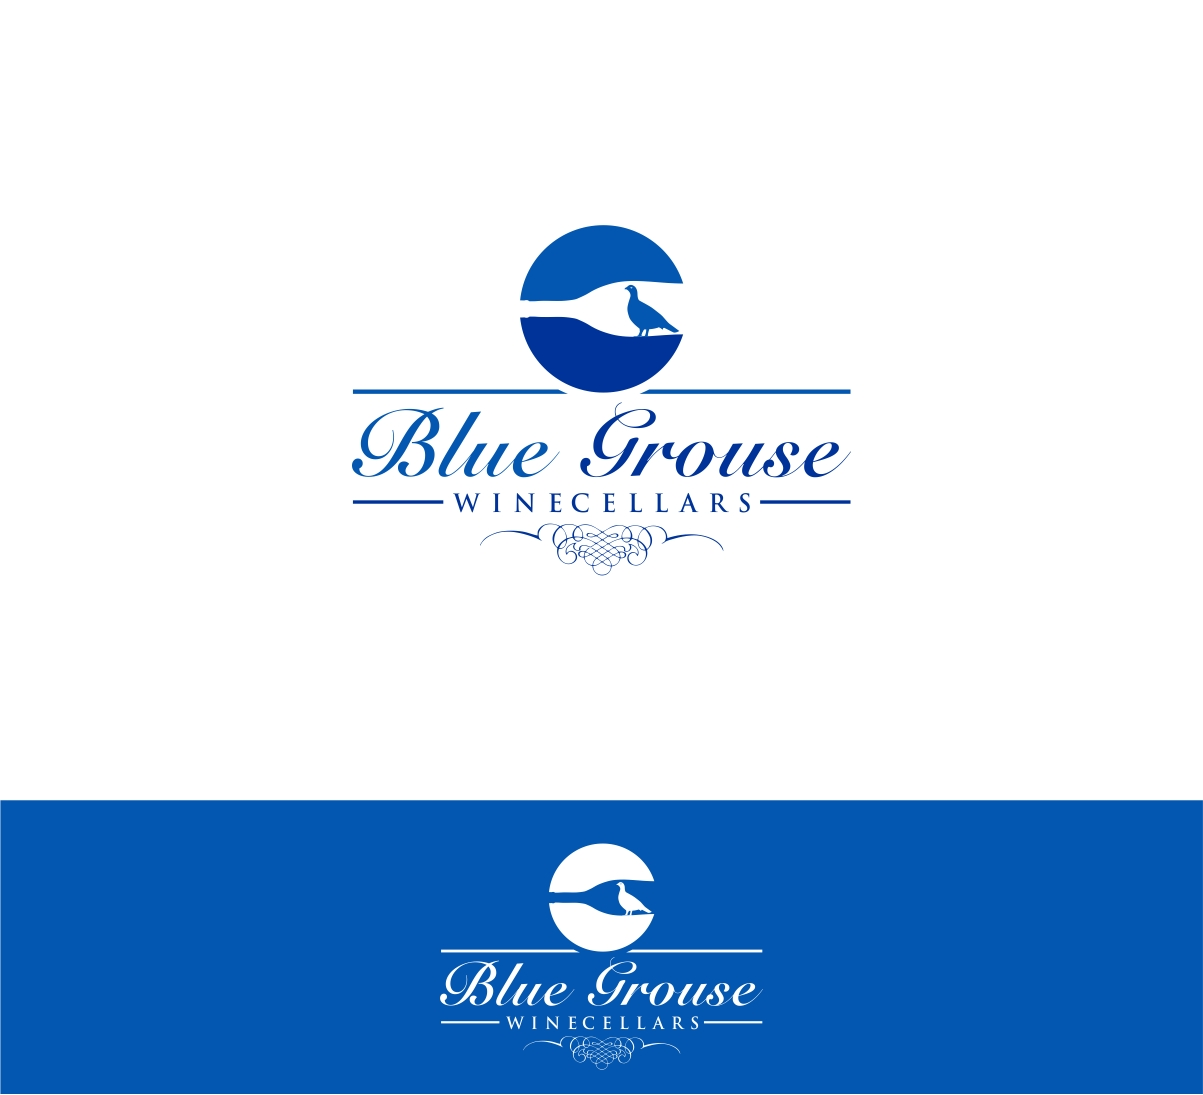 Logo Design by haidu - Entry No. 254 in the Logo Design Contest Creative Logo Design for Blue Grouse Wine Cellars.